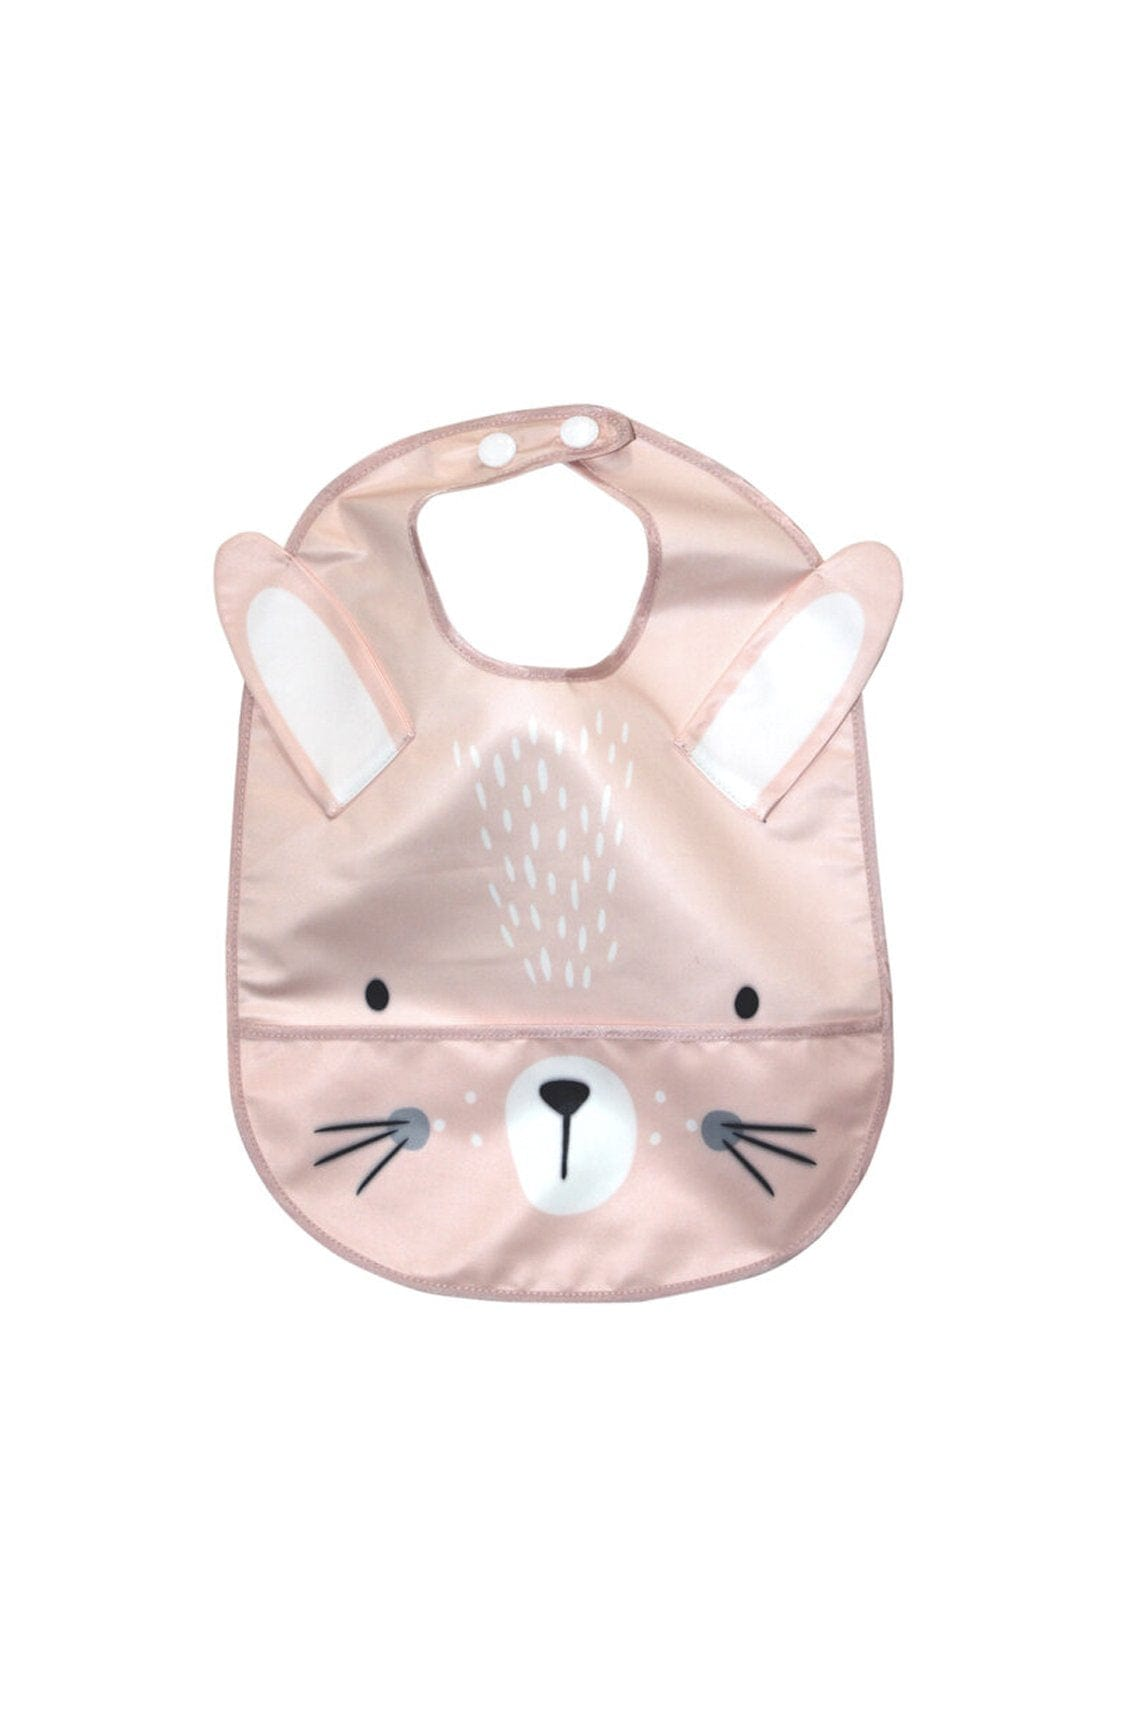 Mister Fly Wipeable Pink Bunny Feeding Bib - Hello Little Birdie